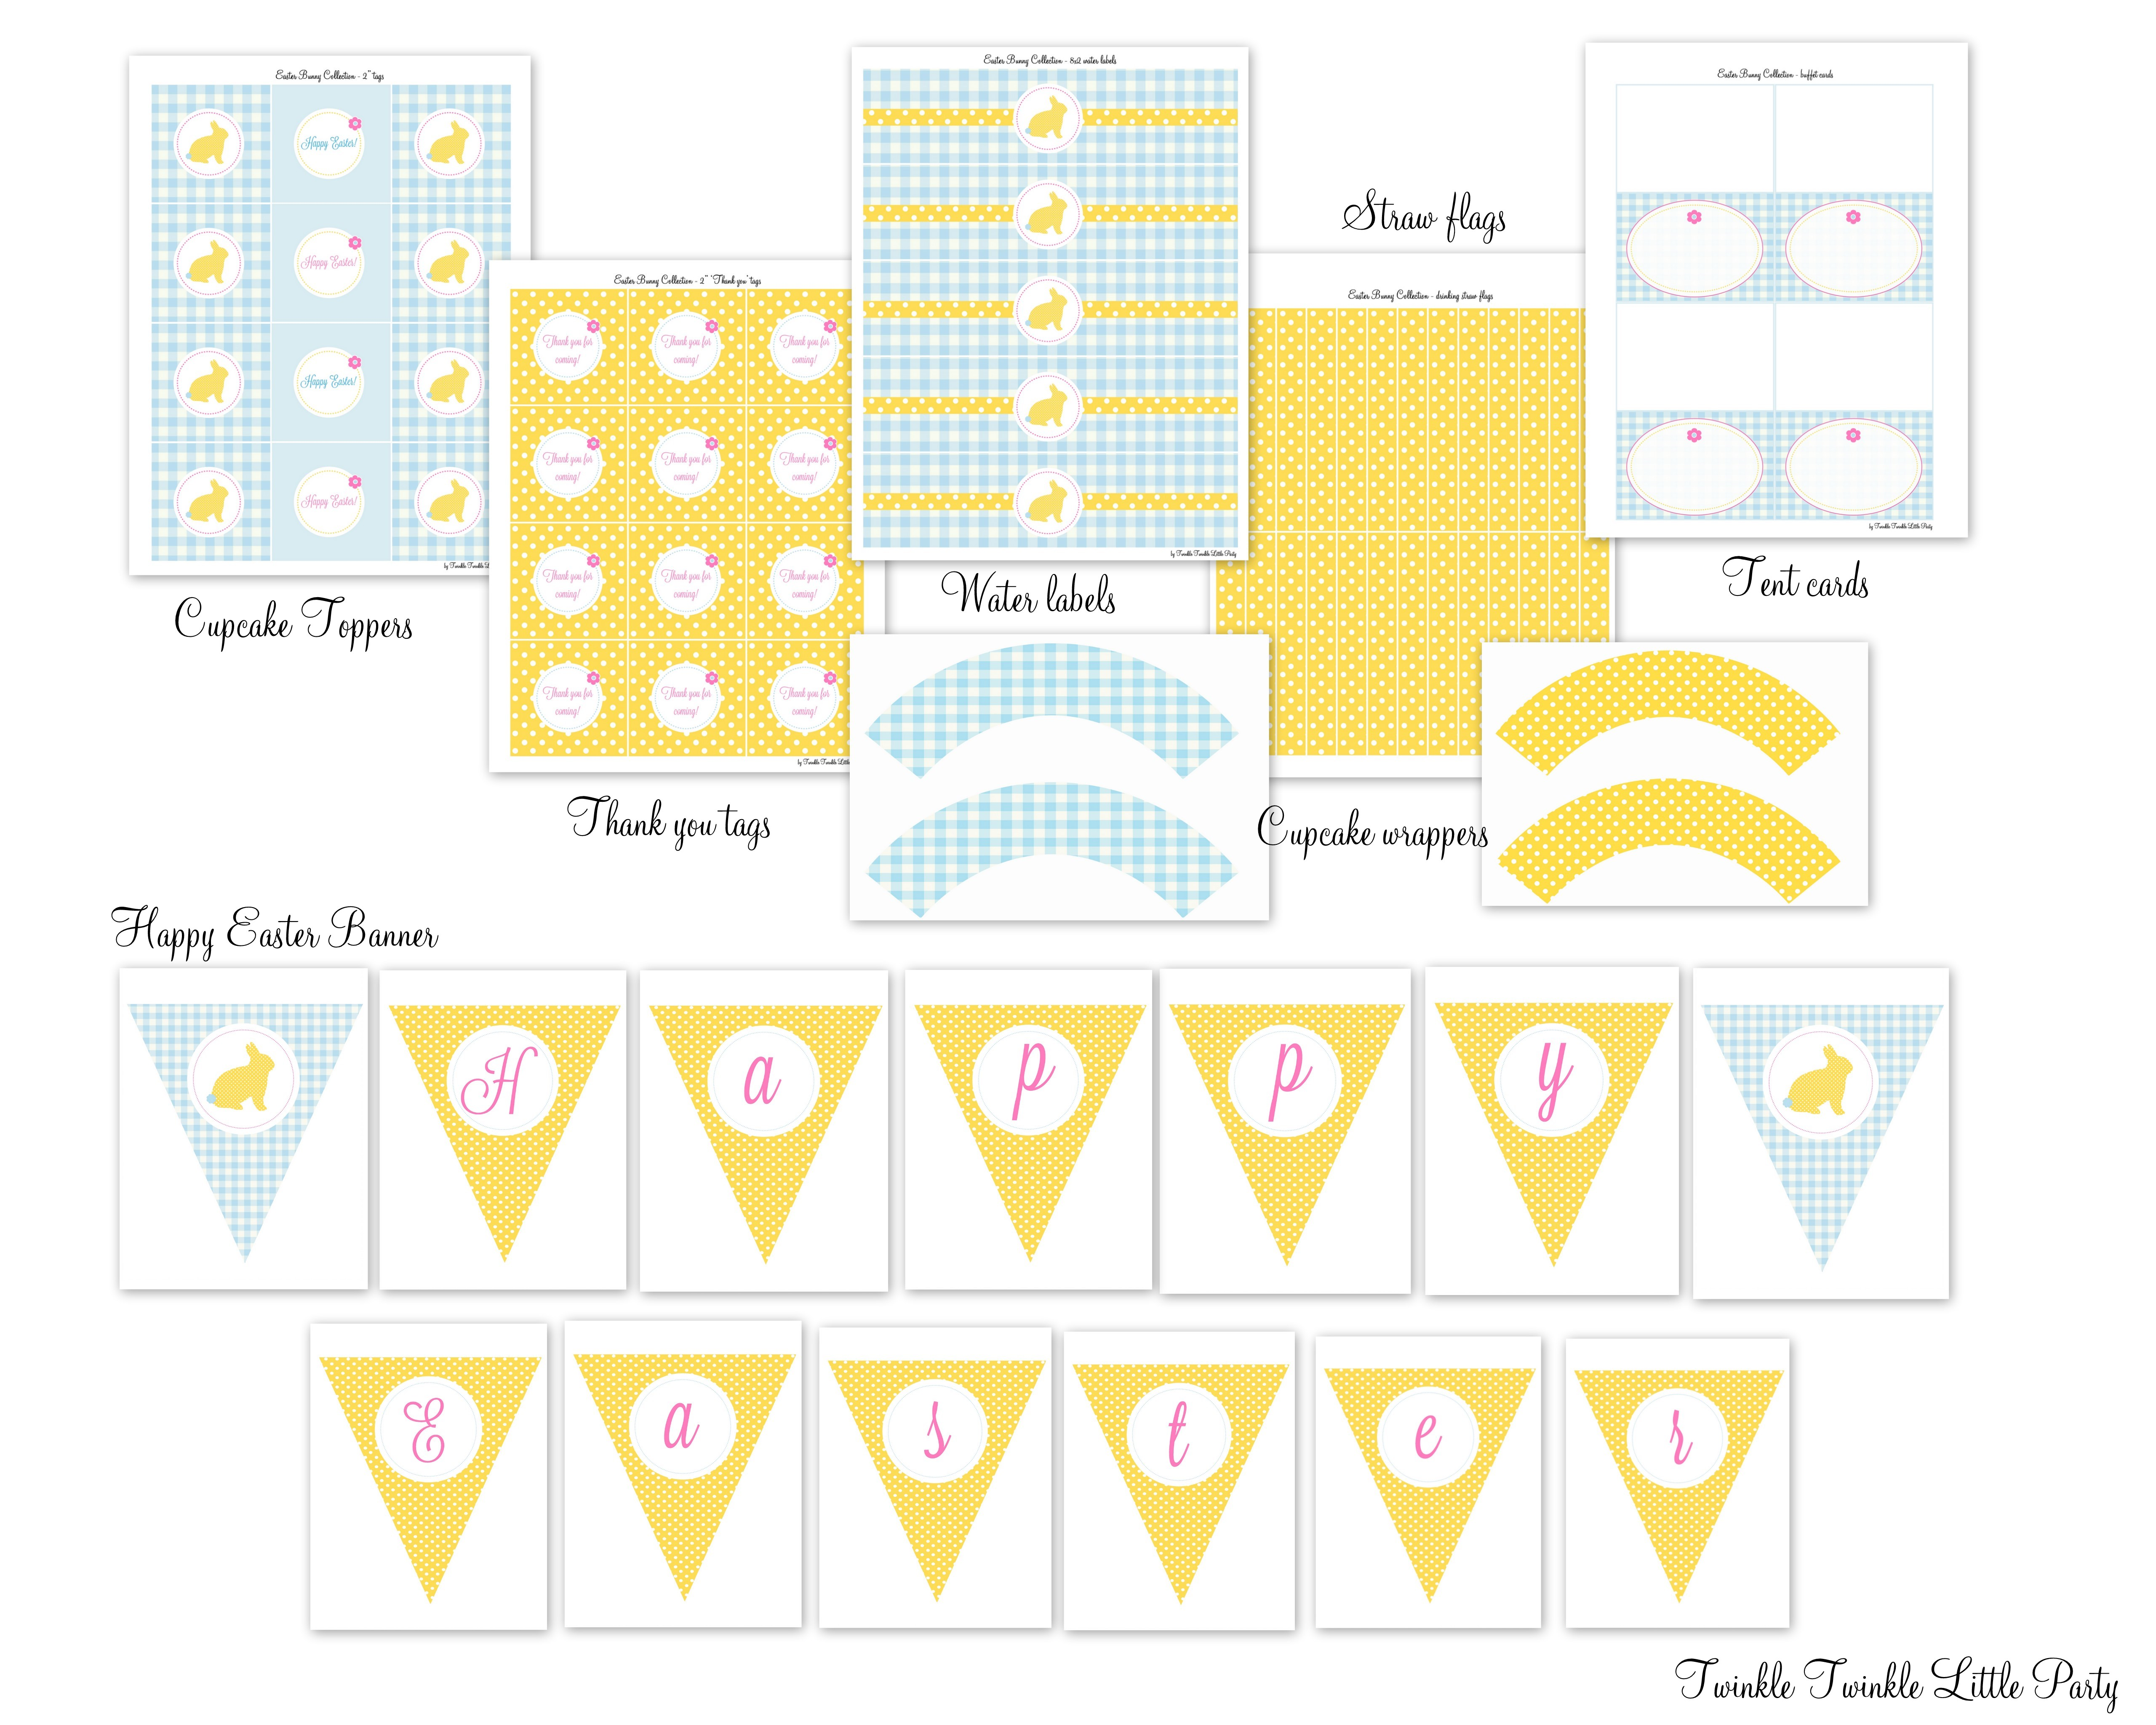 Free Easter Printables From Twinkle Twinkle Little Party